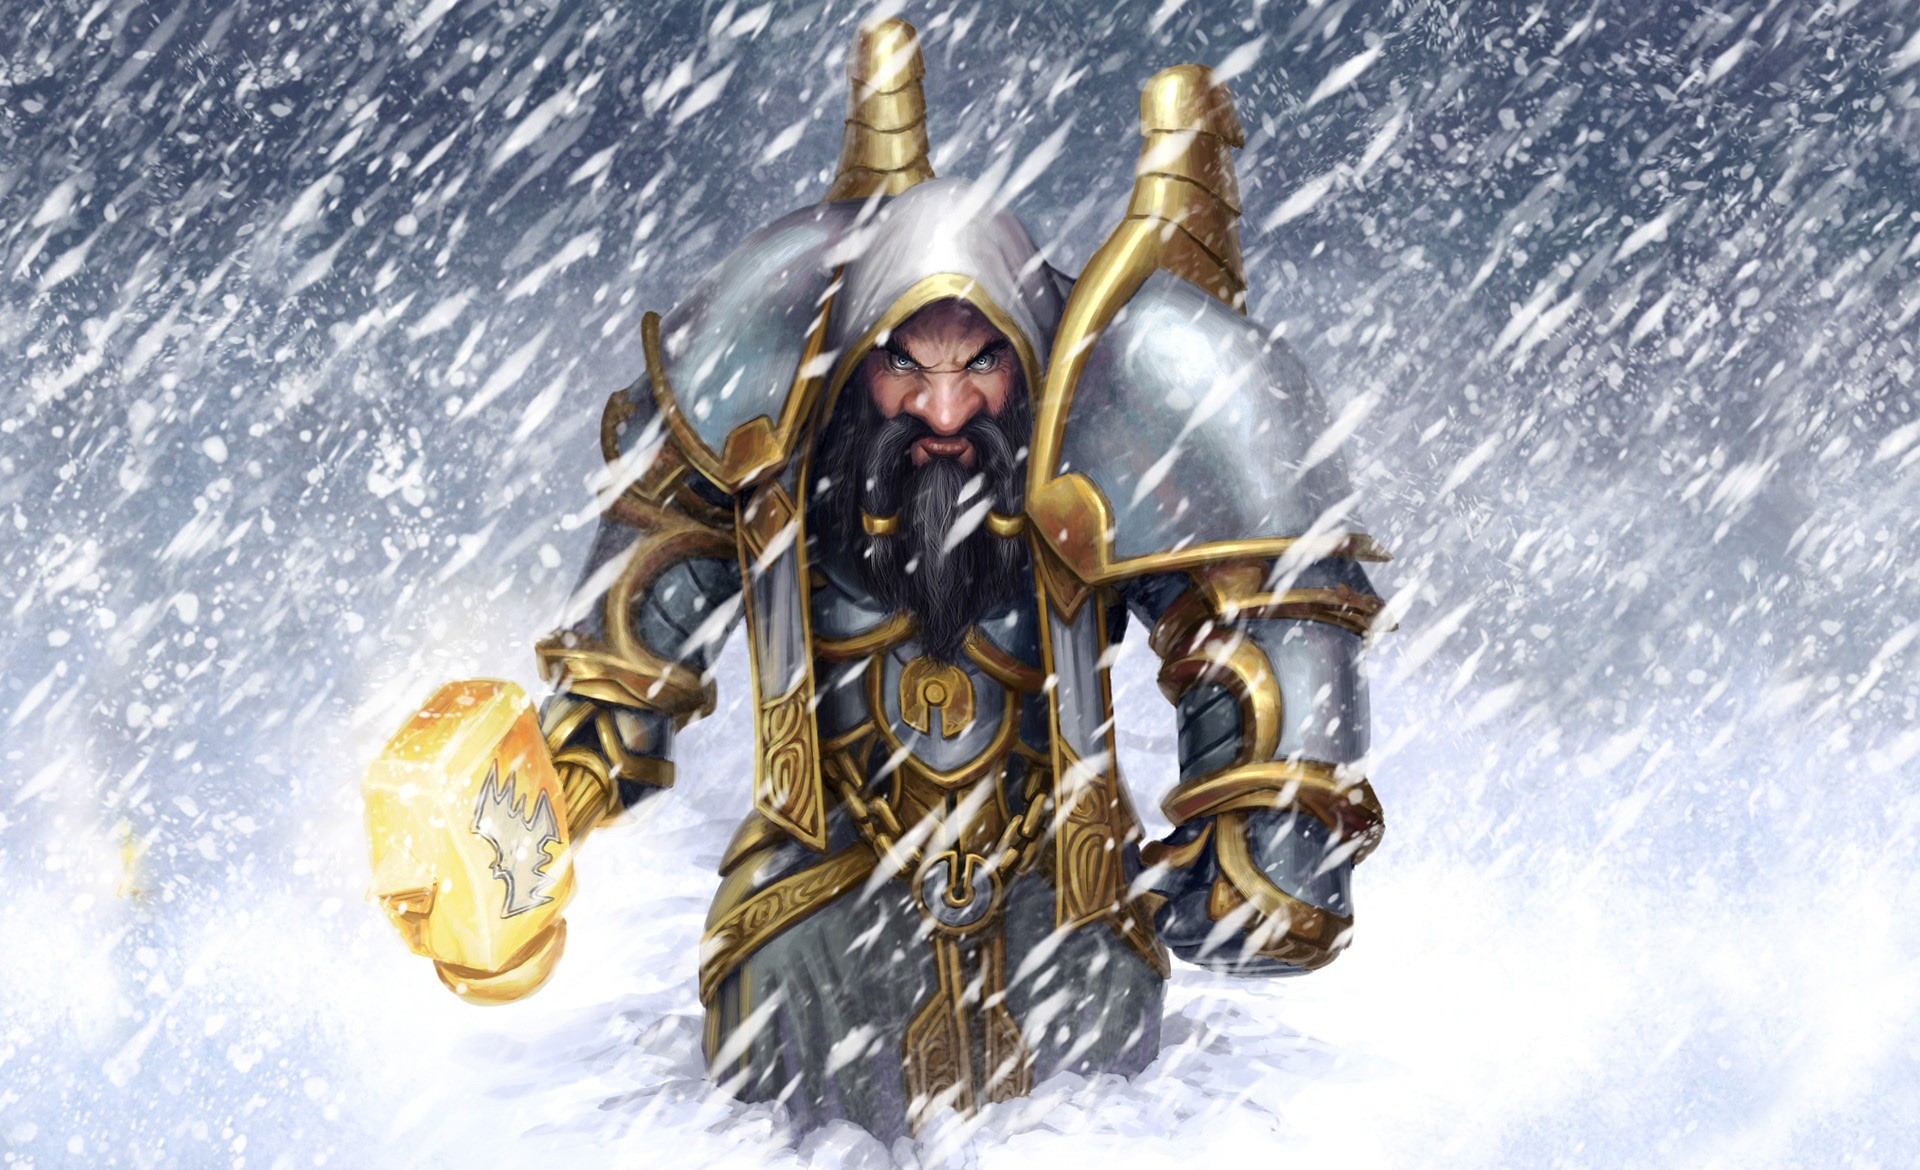 Res: 1920x1170, World of Warcraft Dwarf Fighter Snow Wallpapers